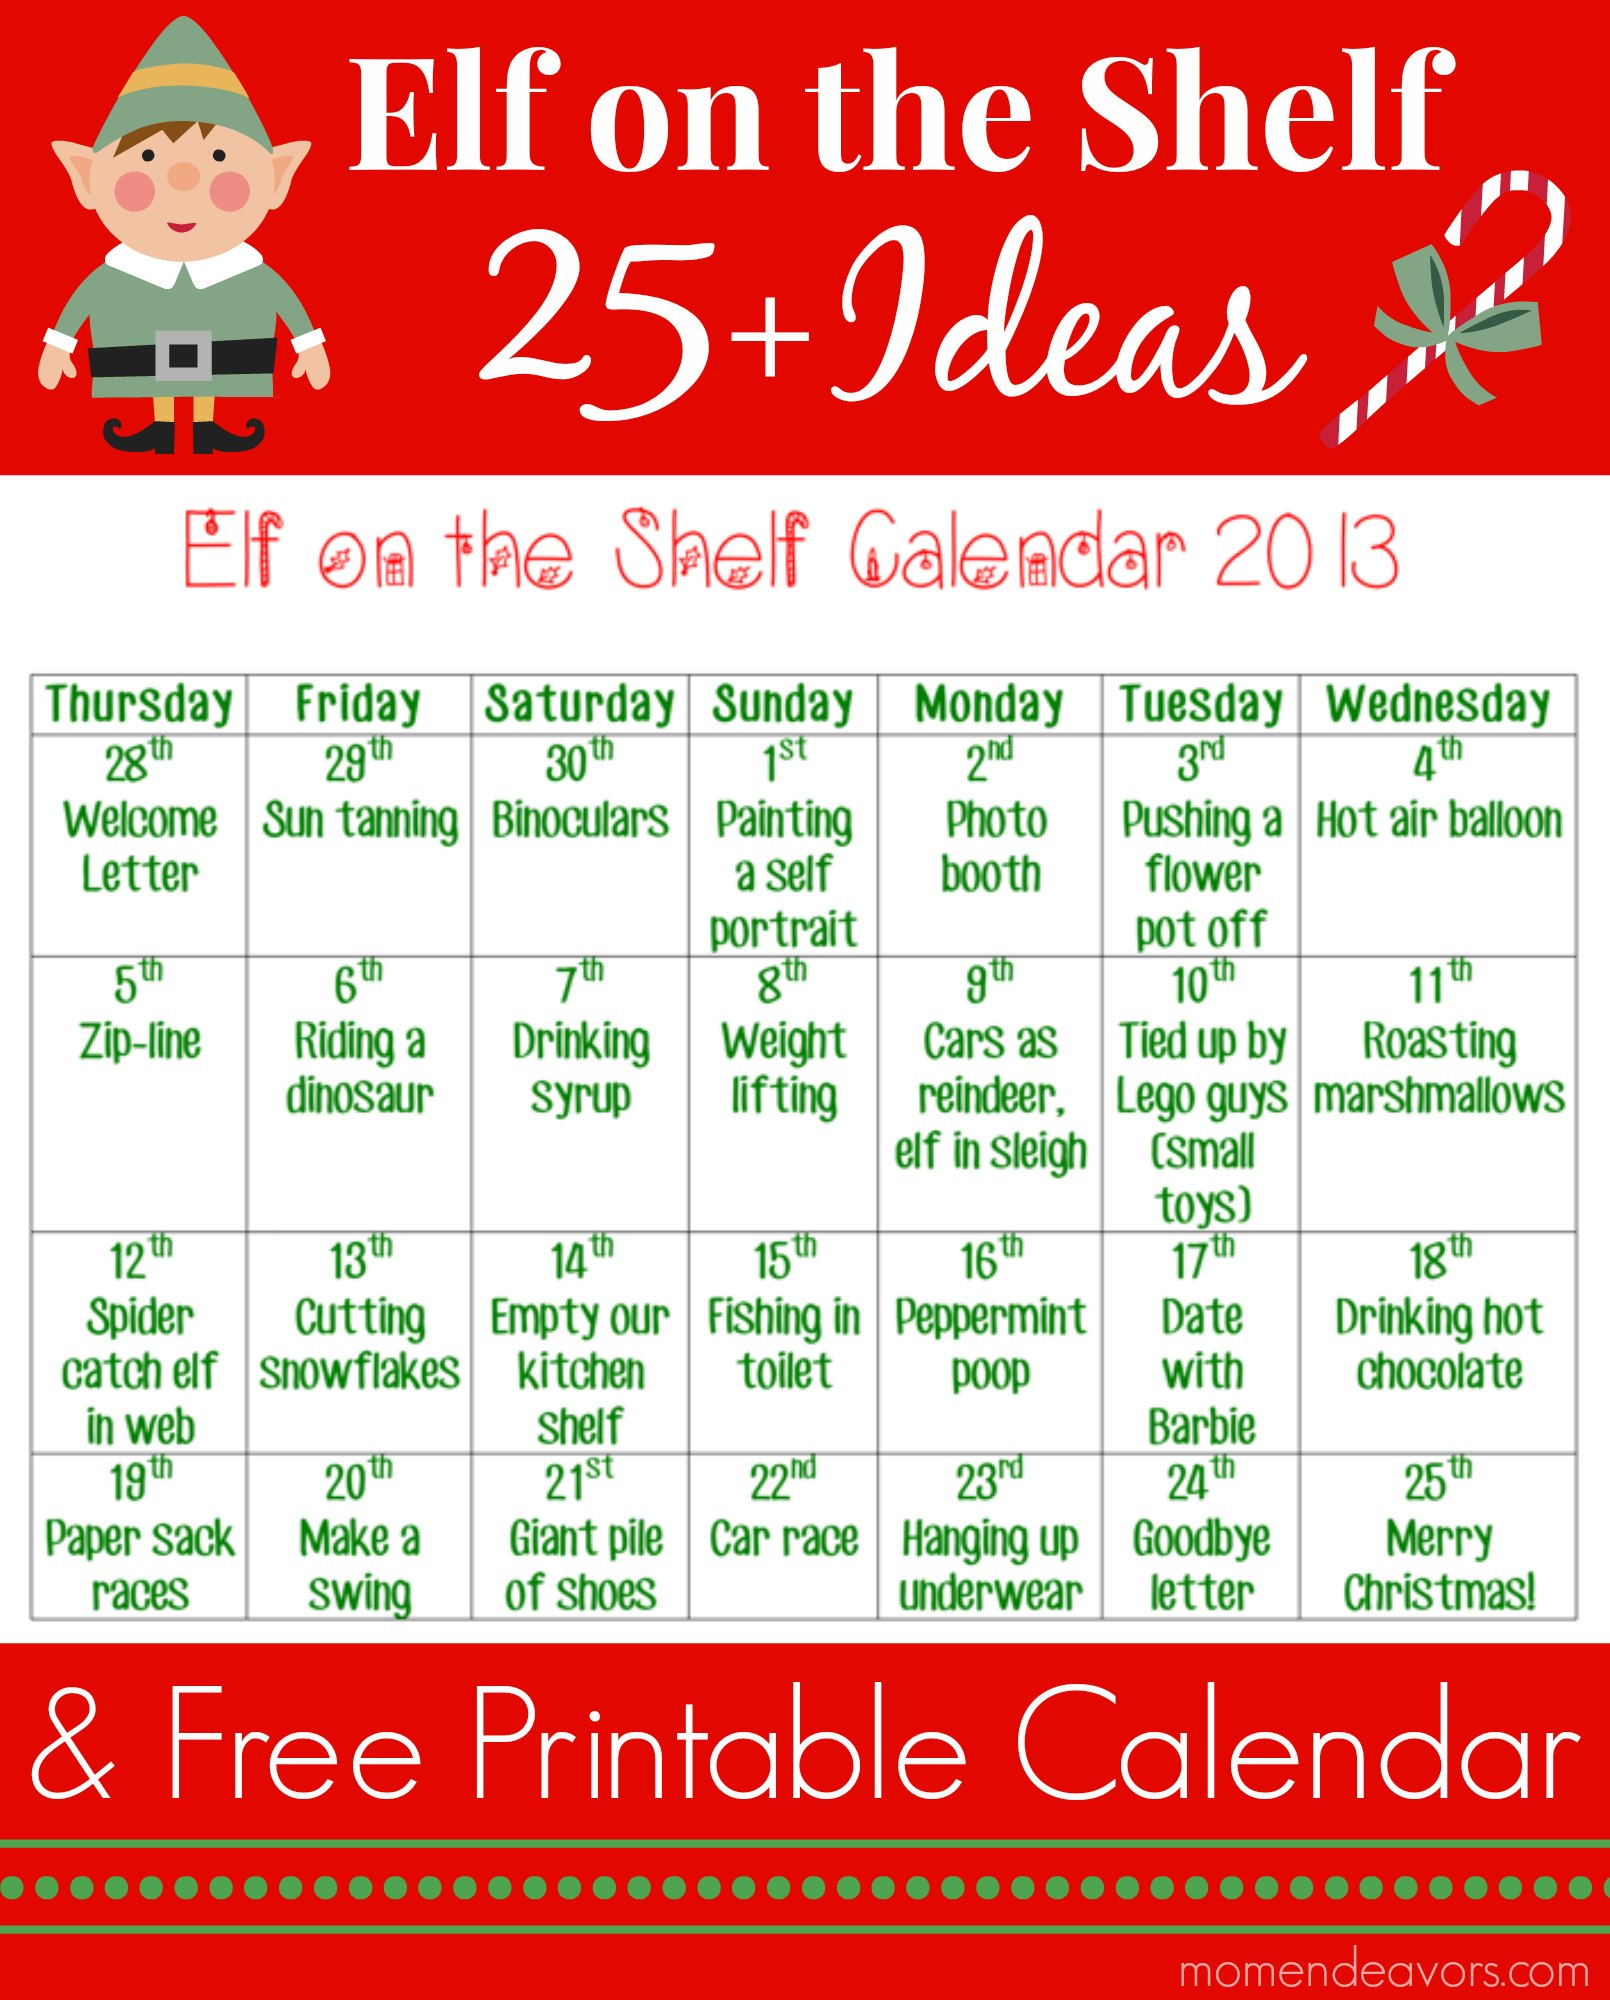 photograph regarding Elf on the Shelf Printable titled 25+ Elf upon the Shelf Options with Printable Calendar (+ an